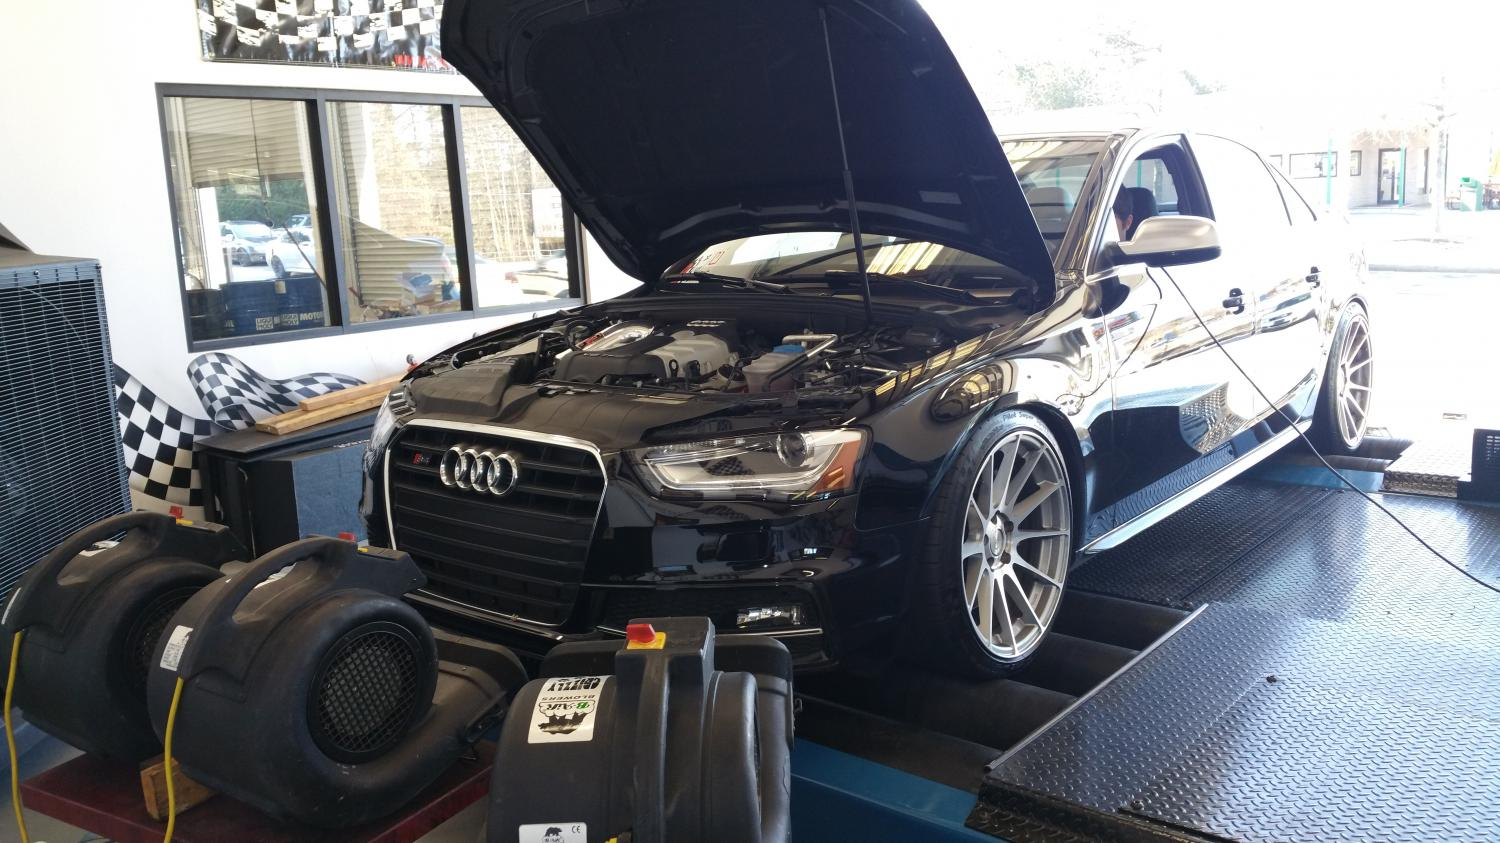 B8.5 S4 is in for custom tuning..